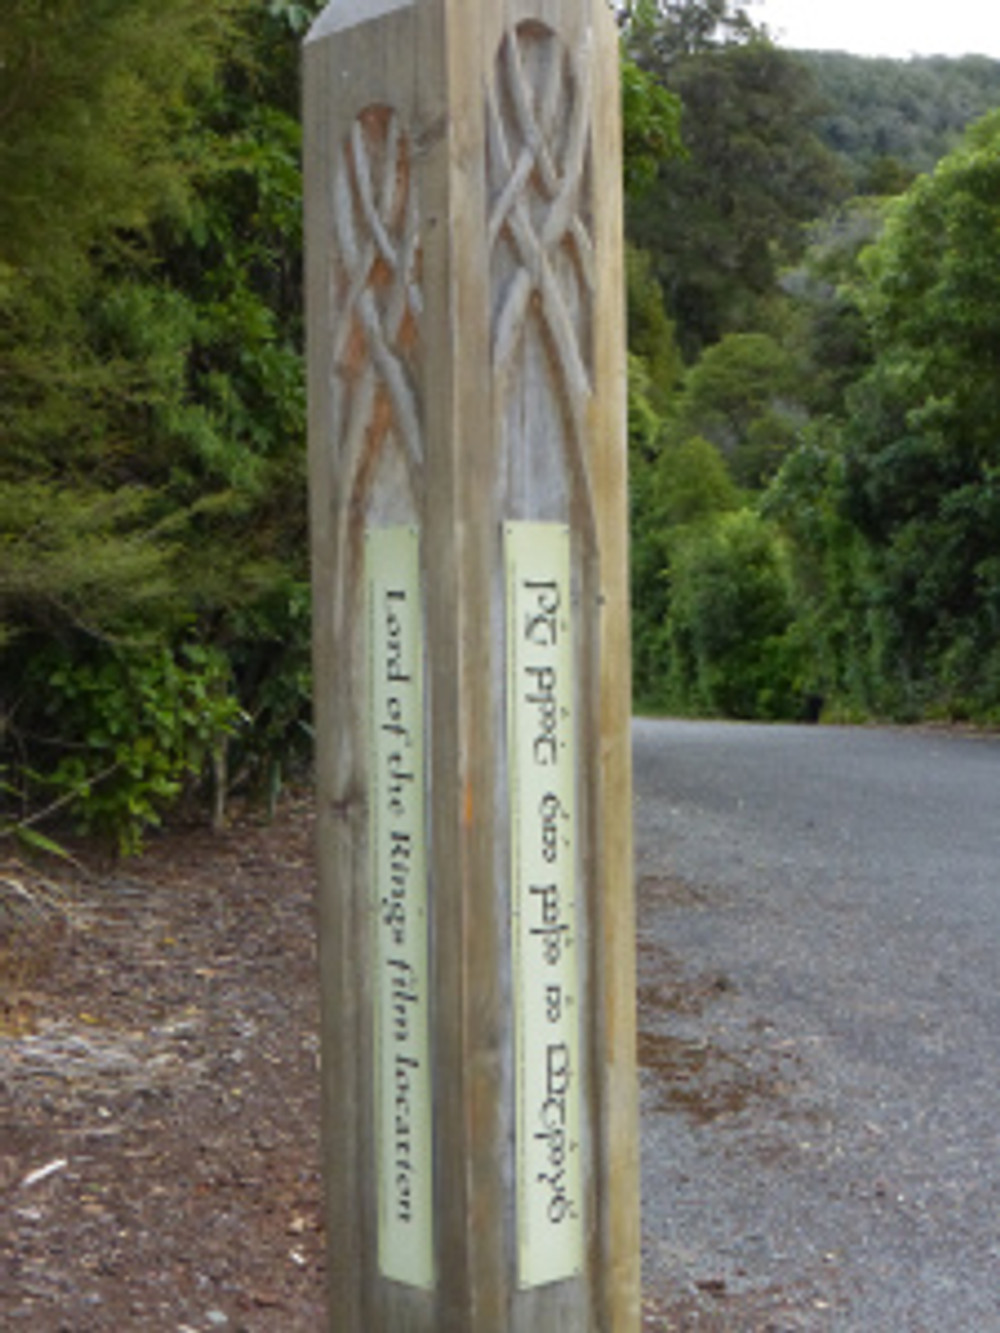 Plaque in the forest near Upper Hutt where Rivendell was shot